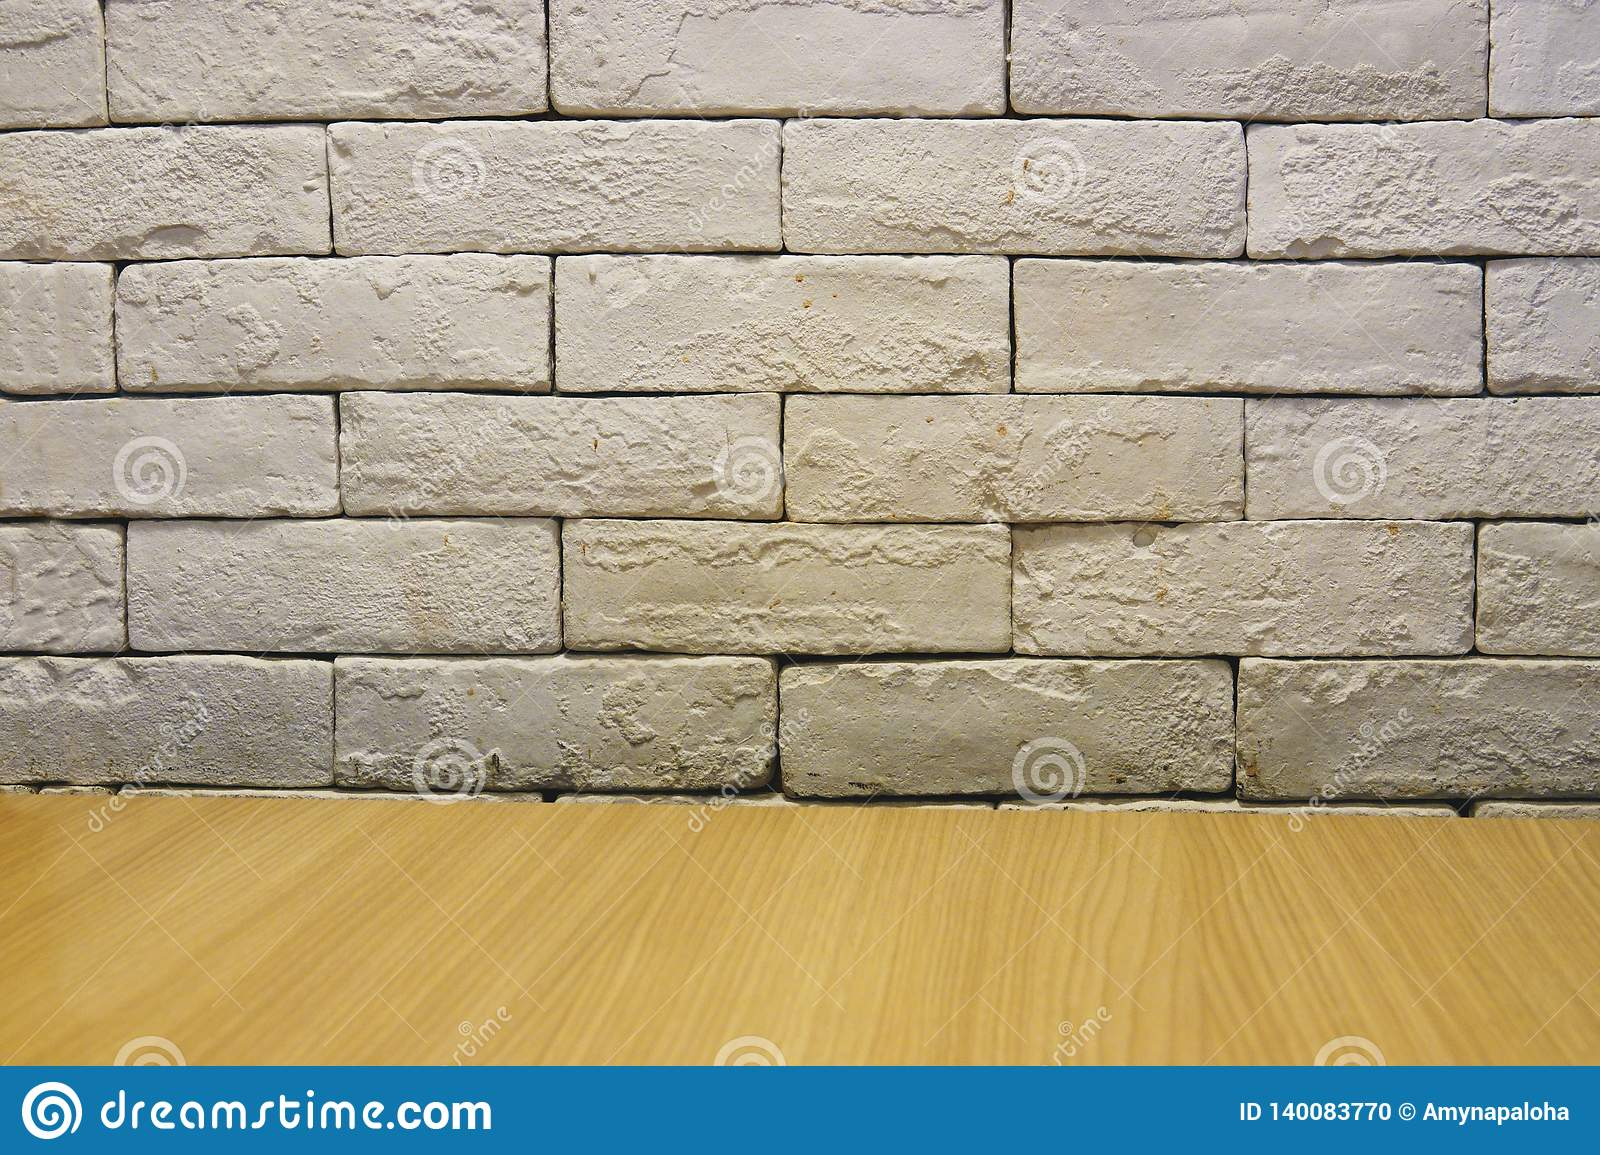 Background of empty white brick old wall, wooden floor